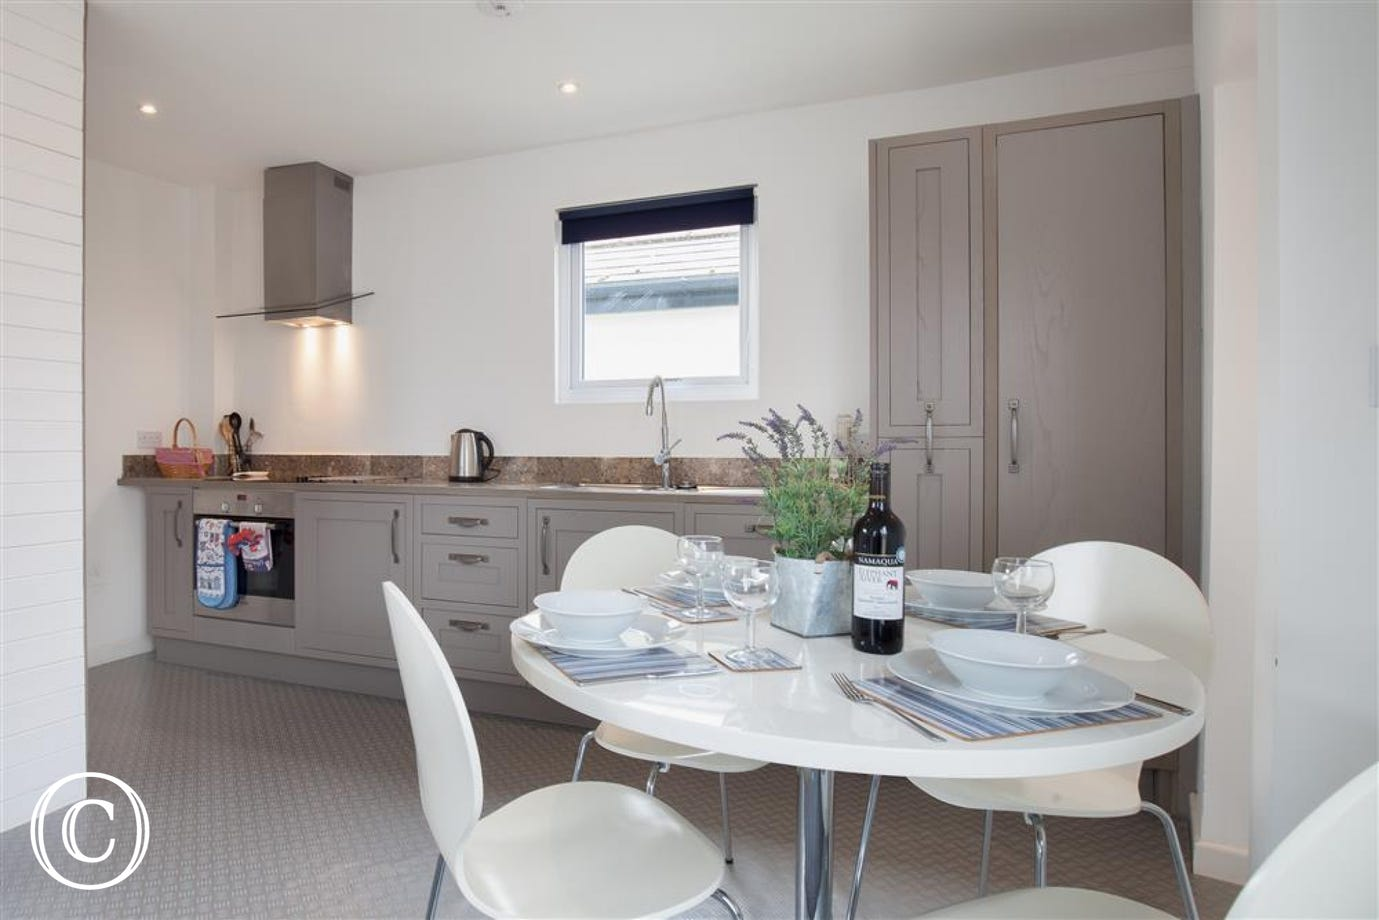 Oyster Cottage, Shaldon - Kitchen view